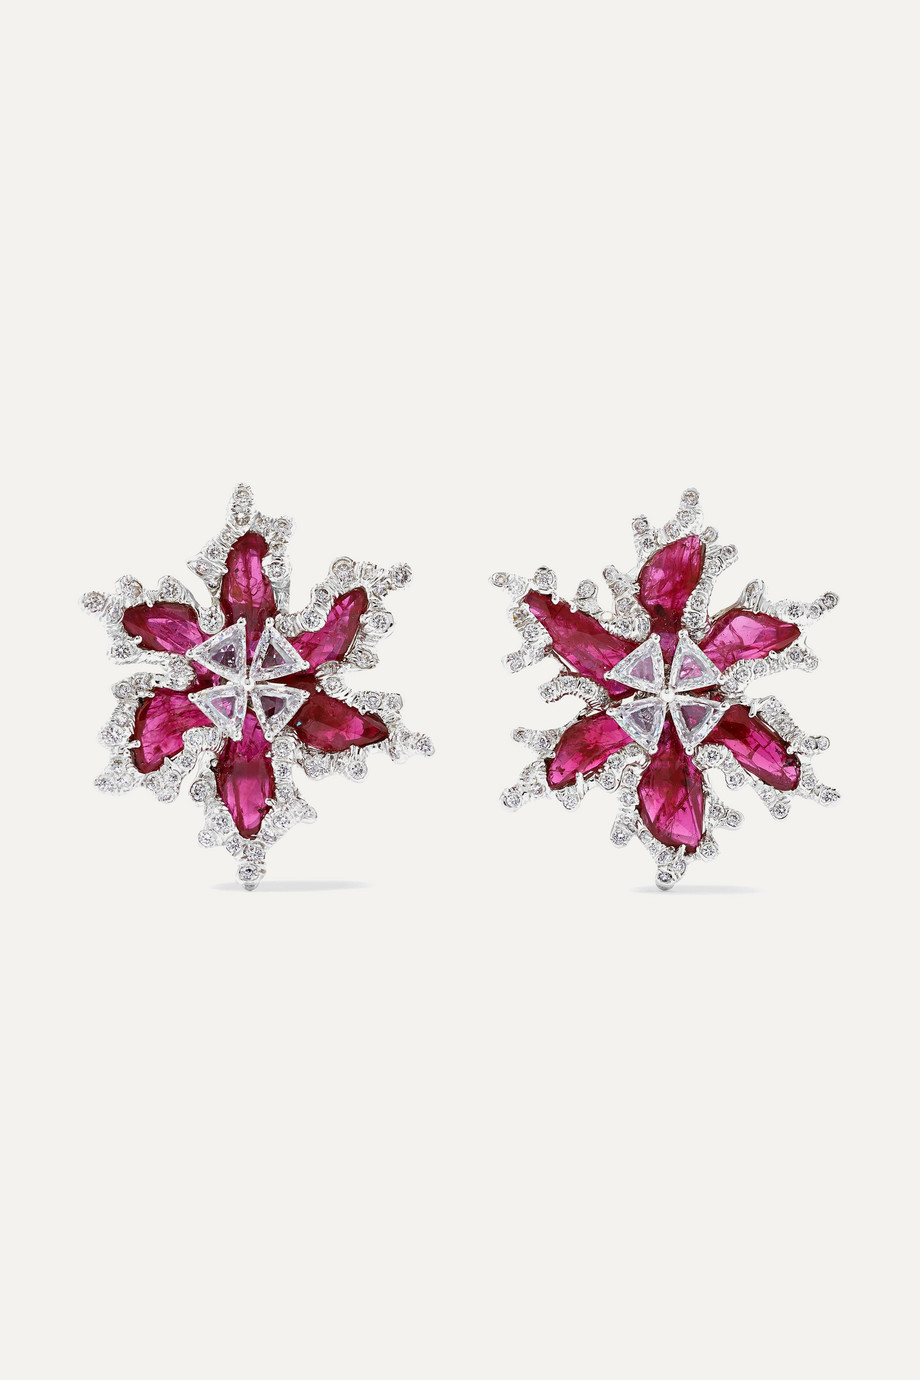 Bina Goenka 18-karat gold, diamond and ruby earrings